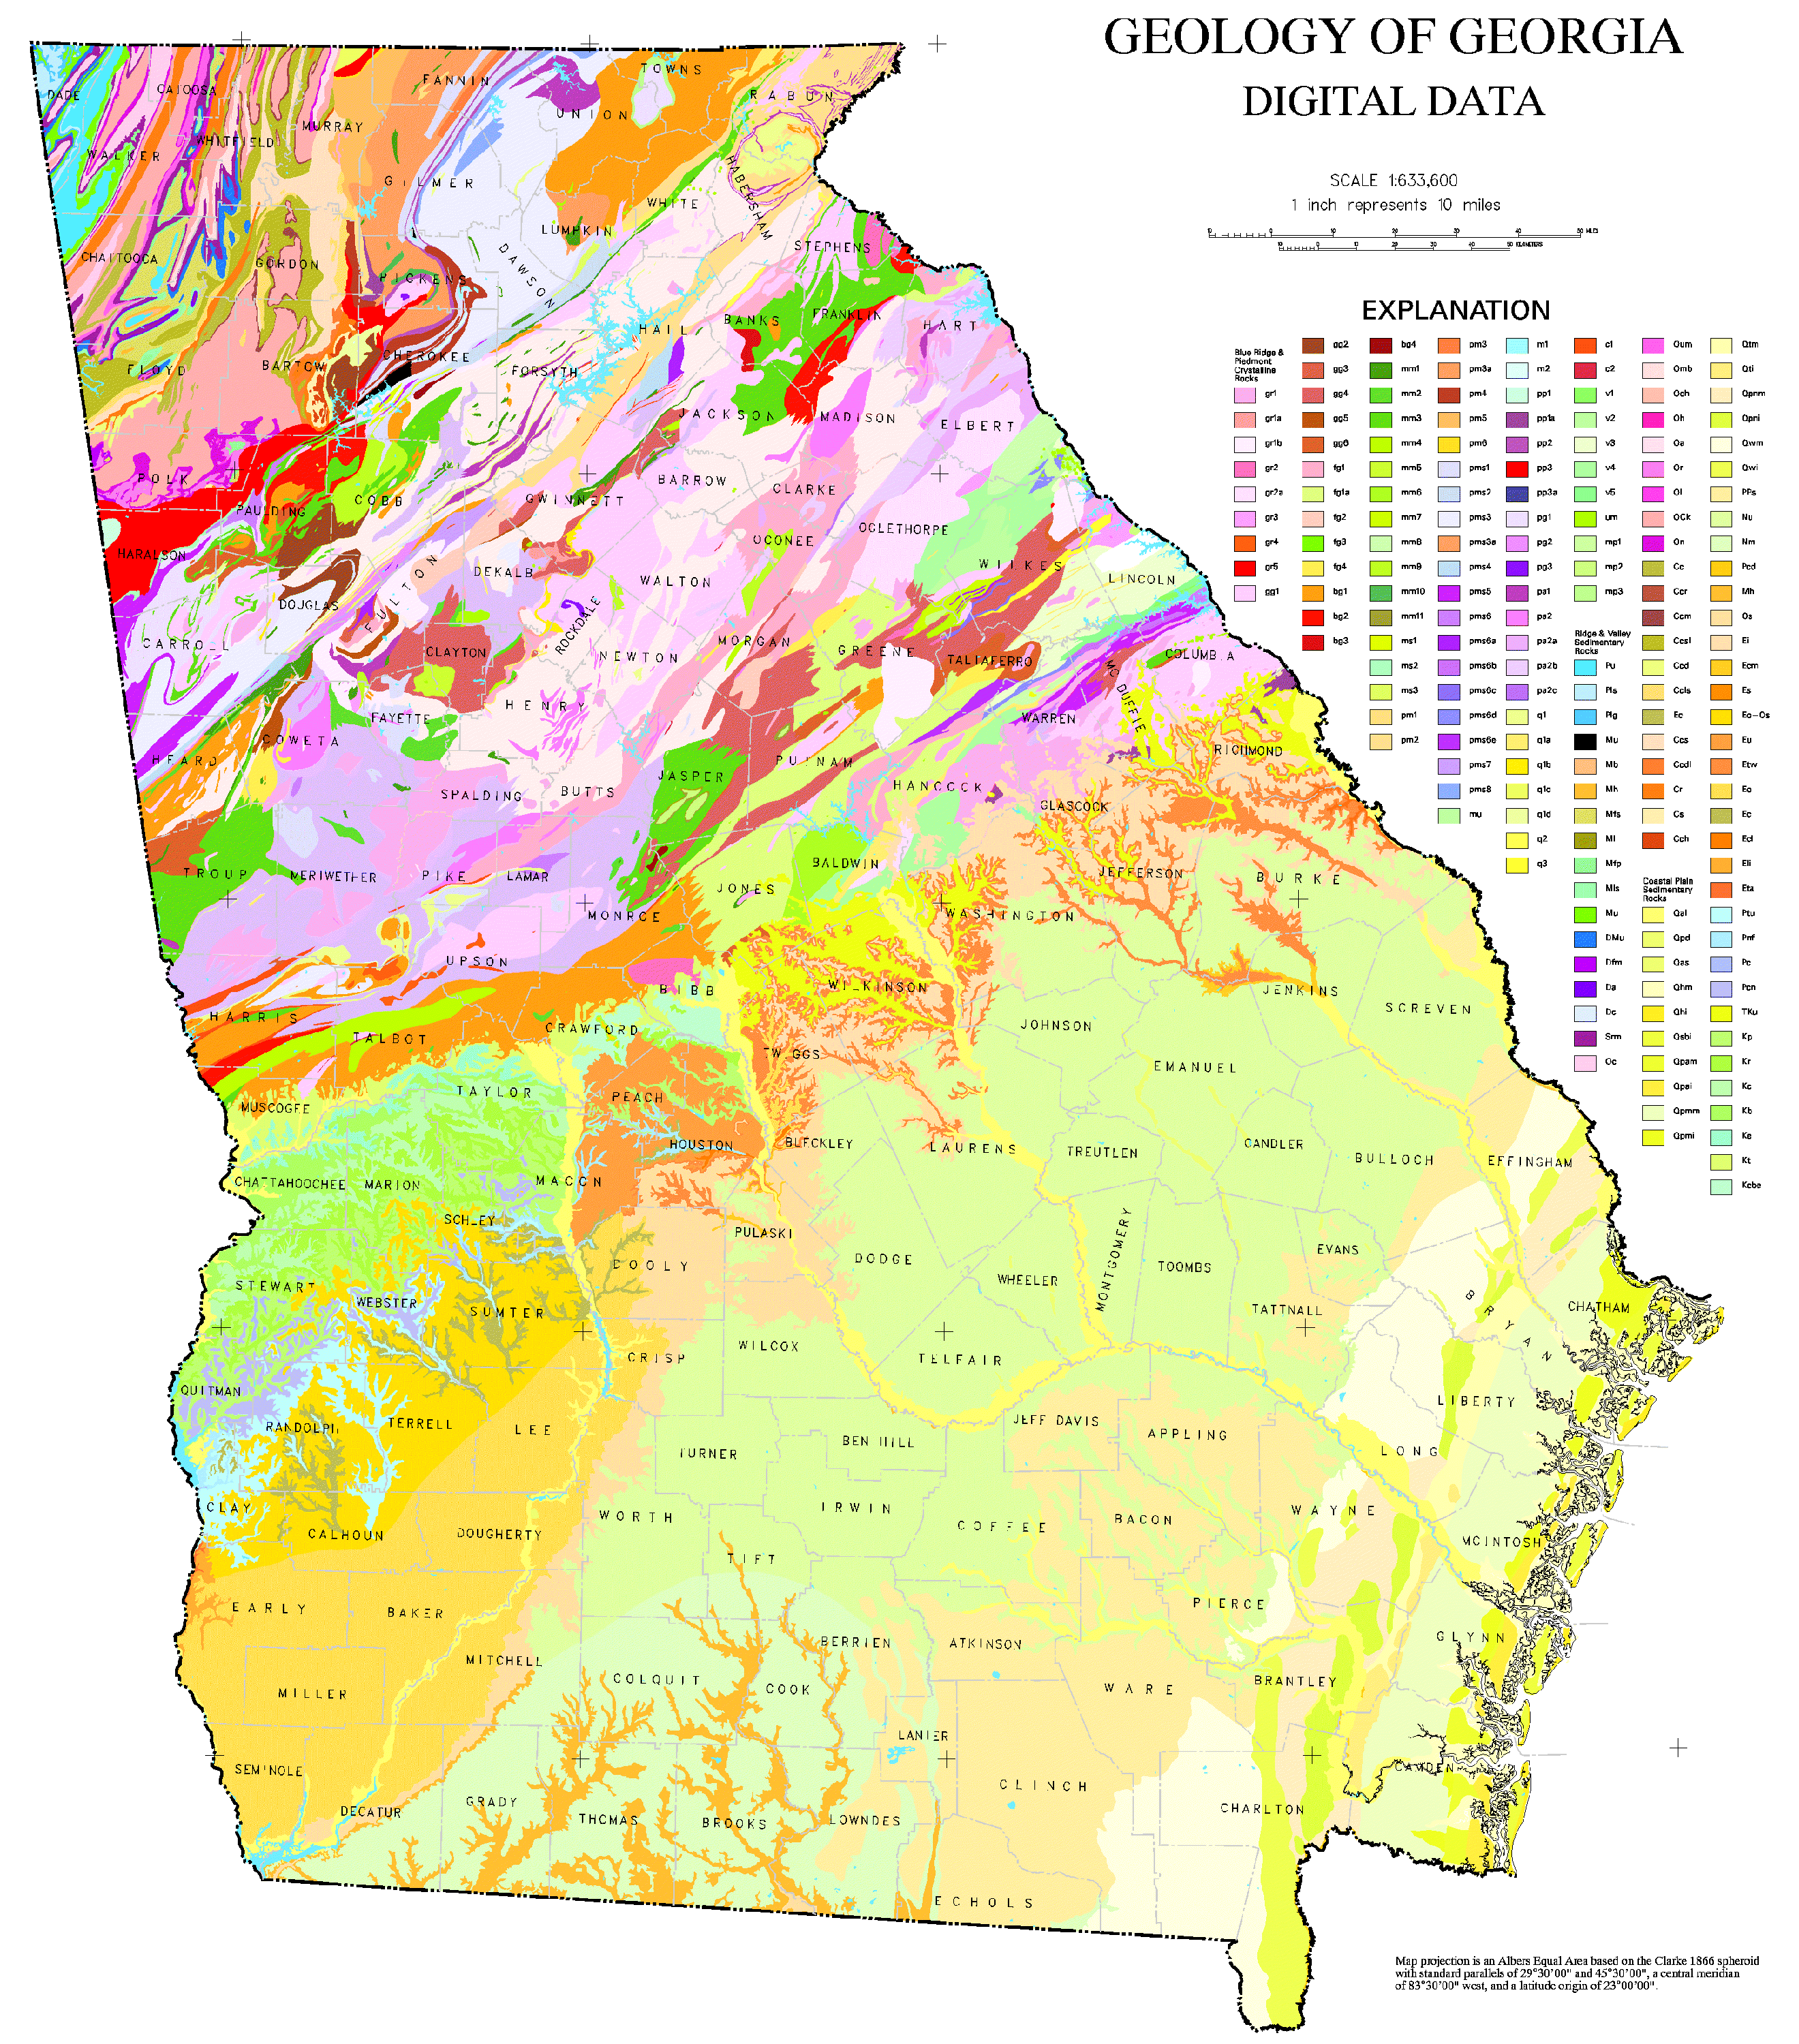 Geologic Map Of Georgia.File Geologic Map Of Georgia Png Wikimedia Commons